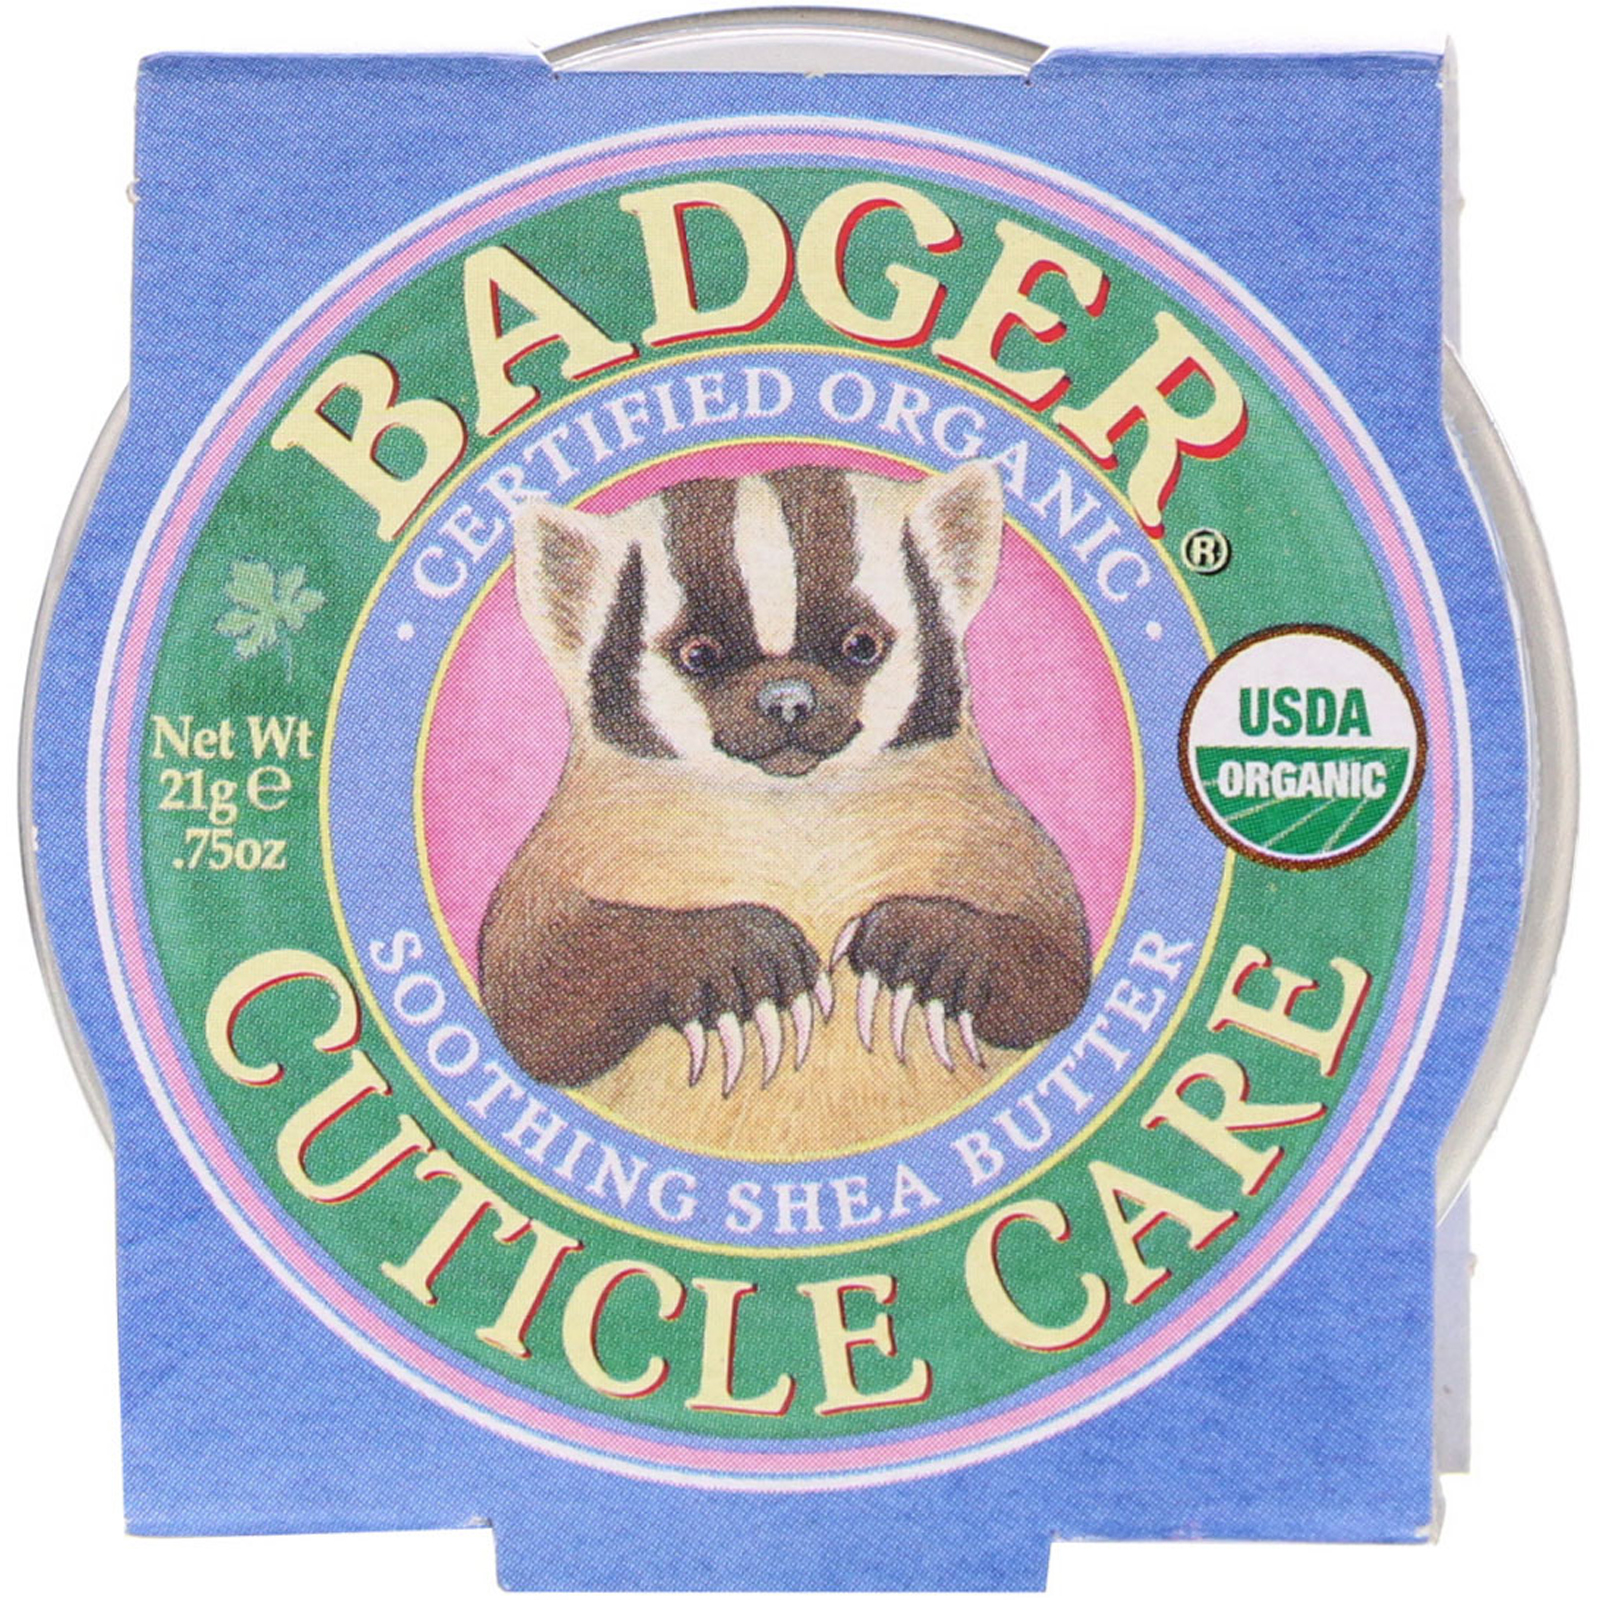 Badger Company, Organic Cuticle Care, Soothing Shea Butter